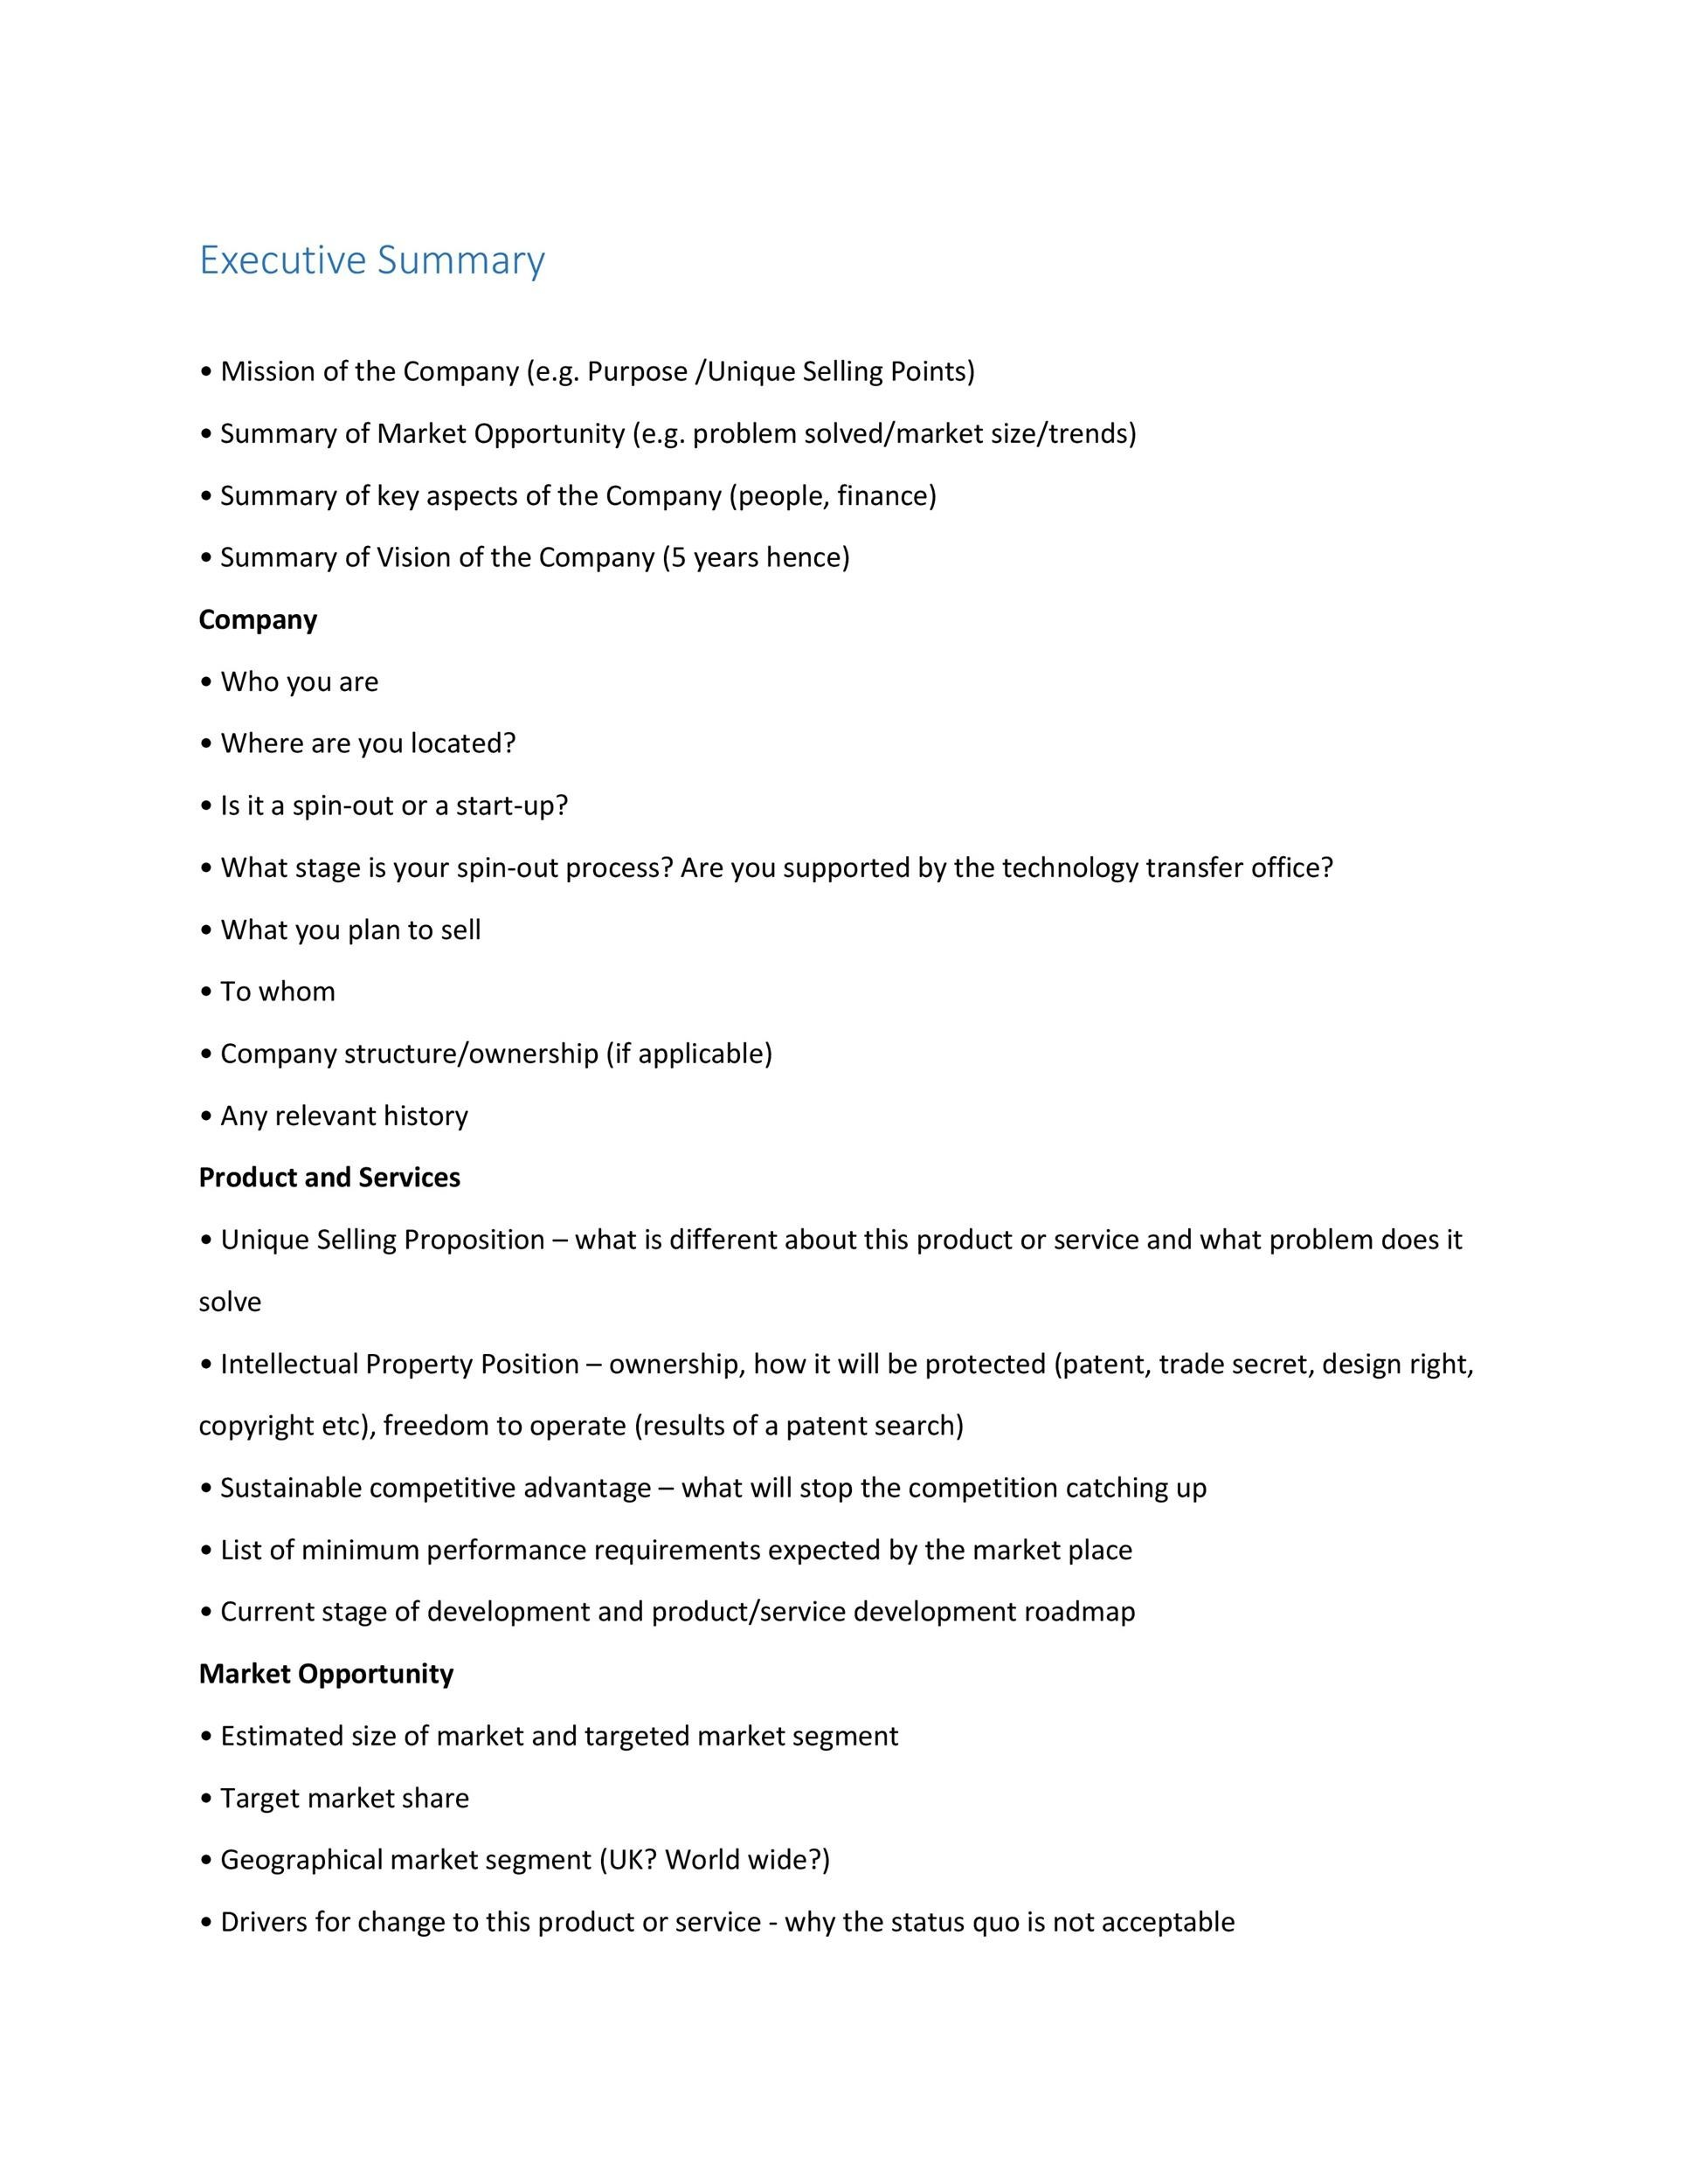 Executive Summary Template 05